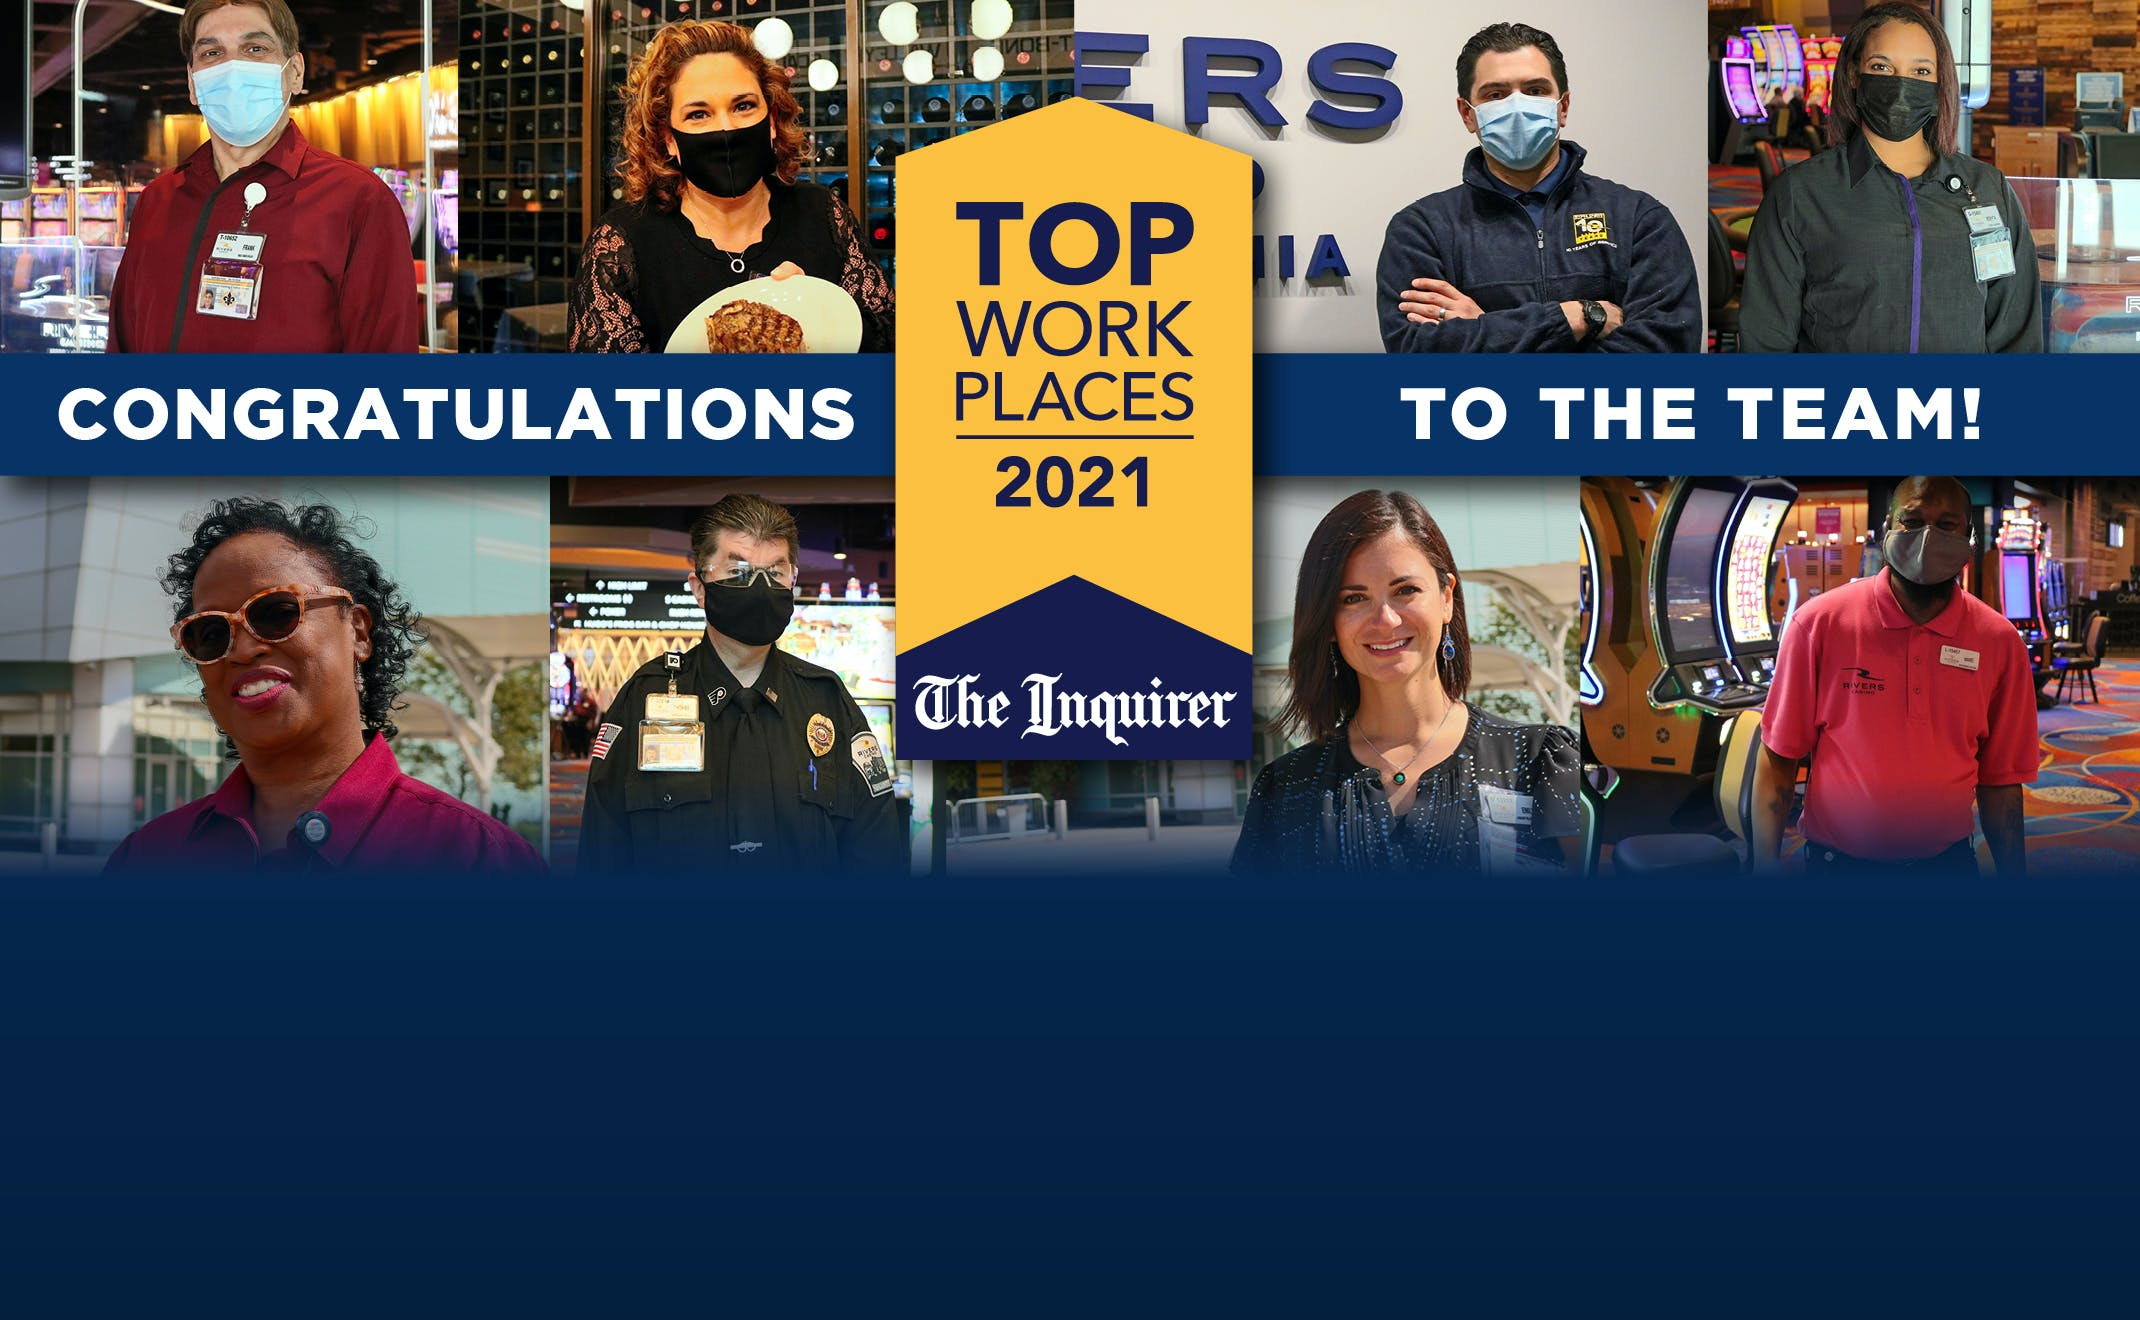 Philly Jobs - Rivers Casino Philadelphia - Top Work Places 2021 Philly Inquirer Image